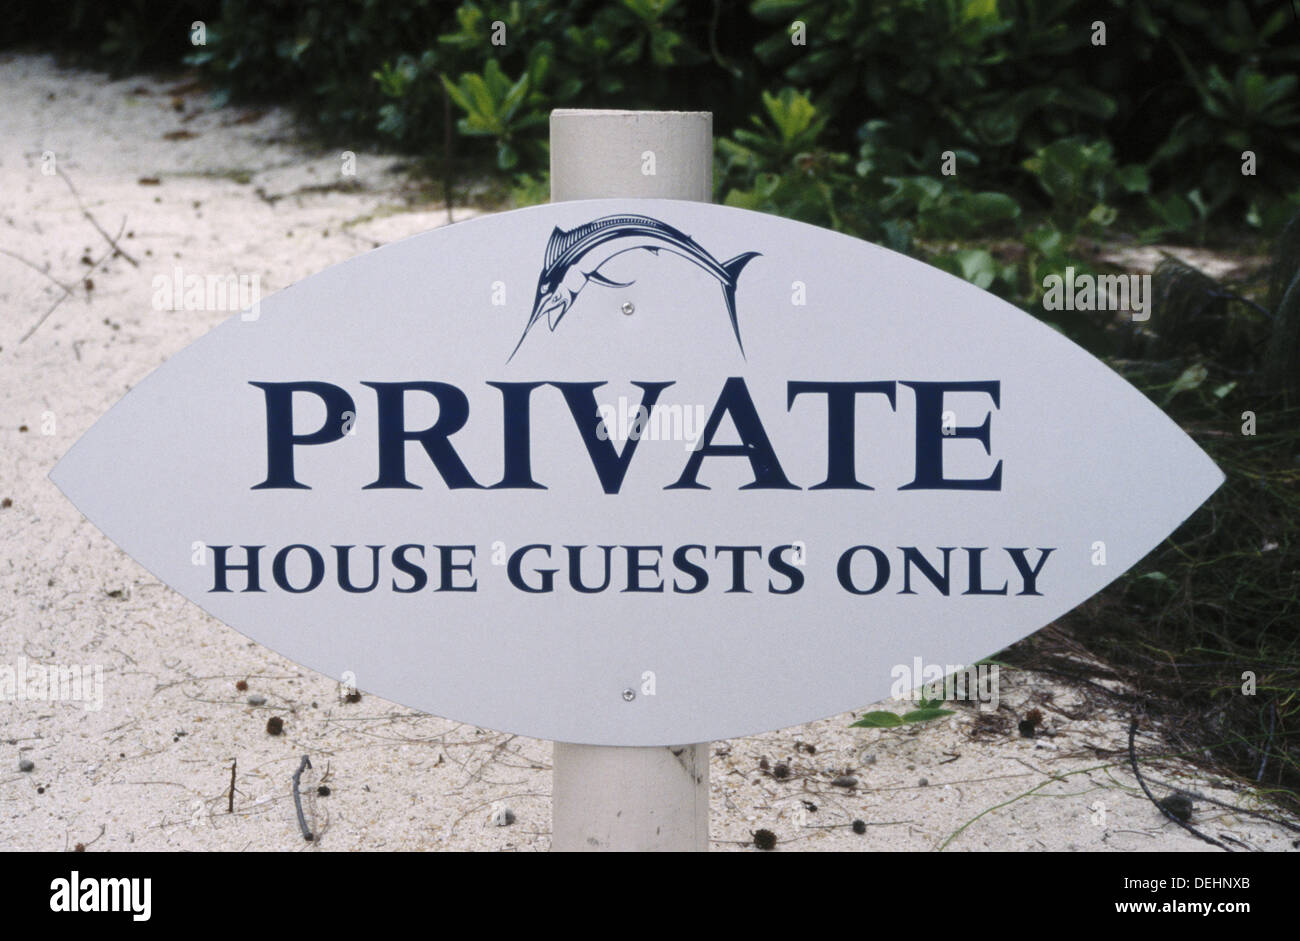 Private - house guests only. Only people staying at this exclusive resort can access the beach. - Stock Image